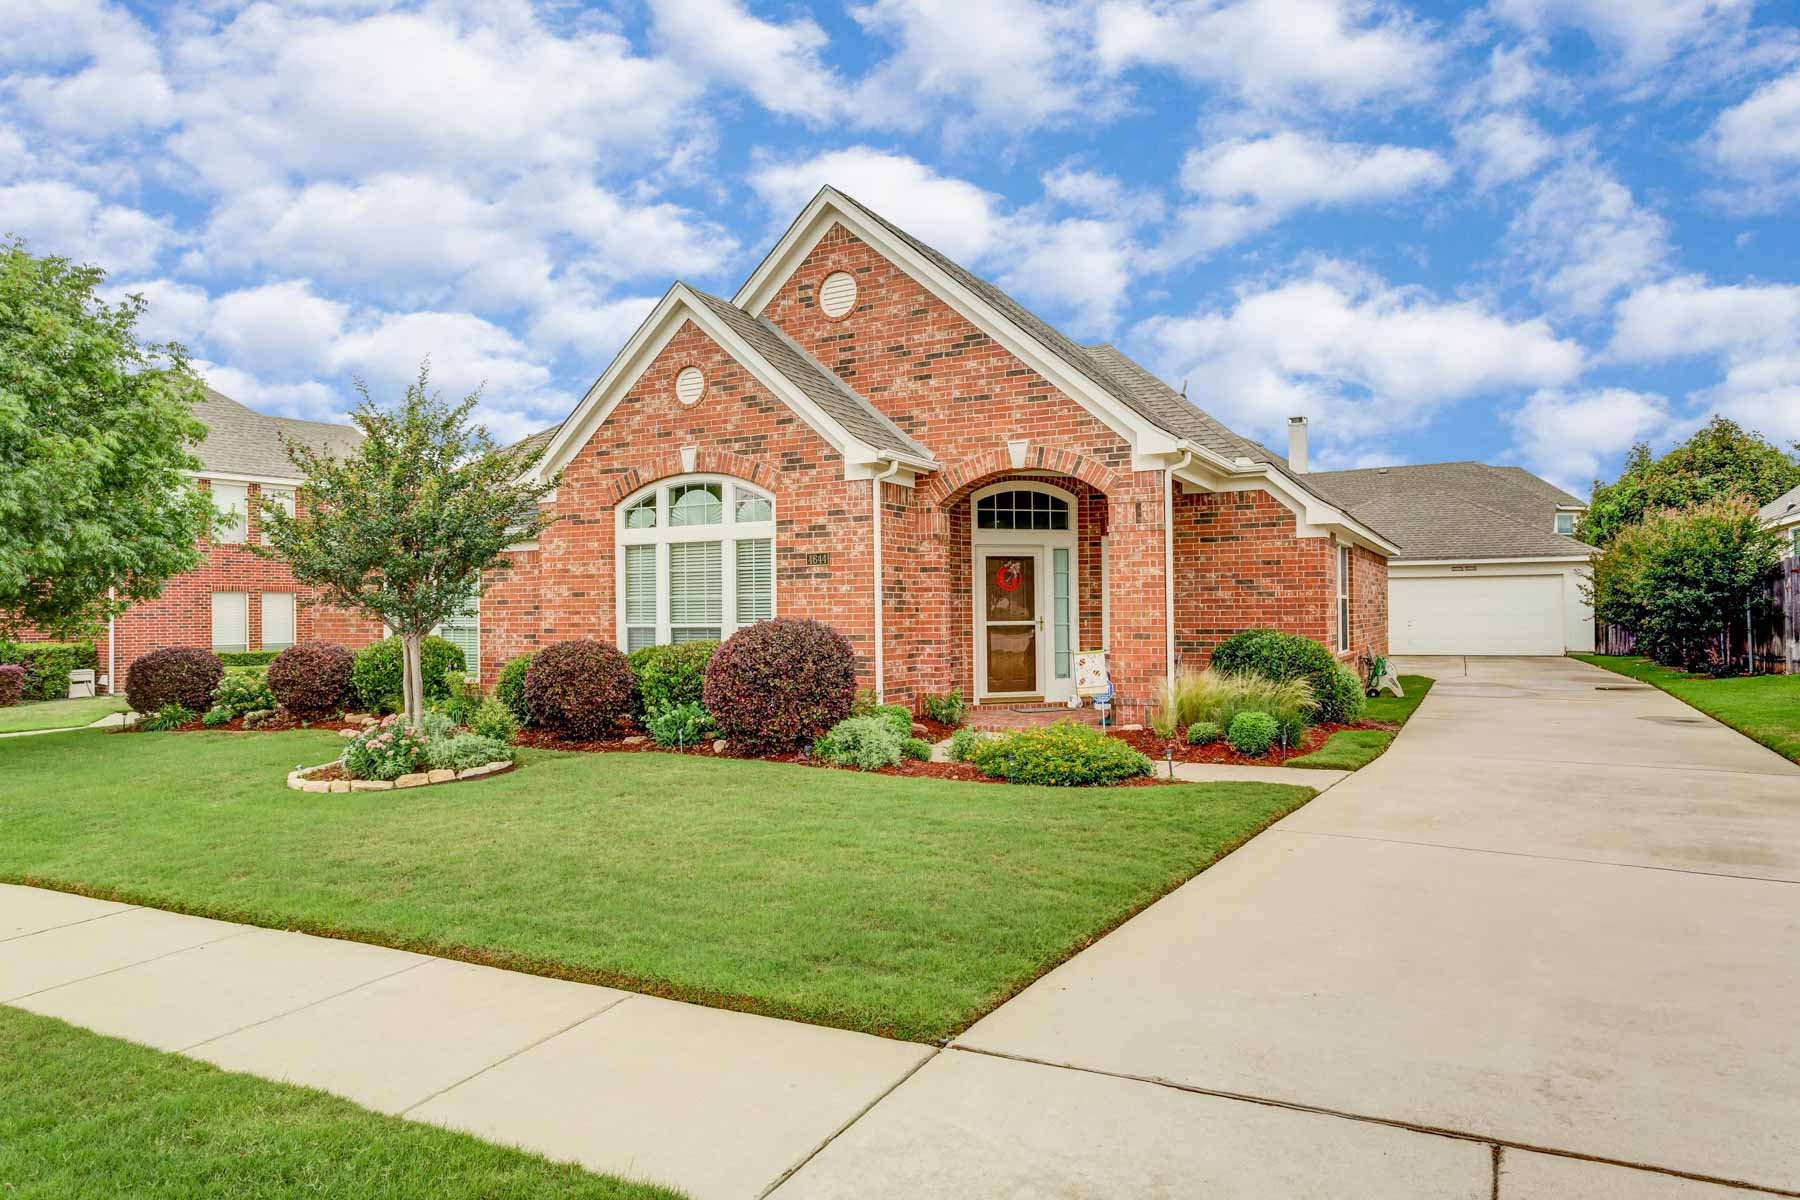 Single Family Home for Sale at Perry Model Home in Summer Creek Ranch 4644 Edenwood Drive Fort Worth, Texas, 76123 United States